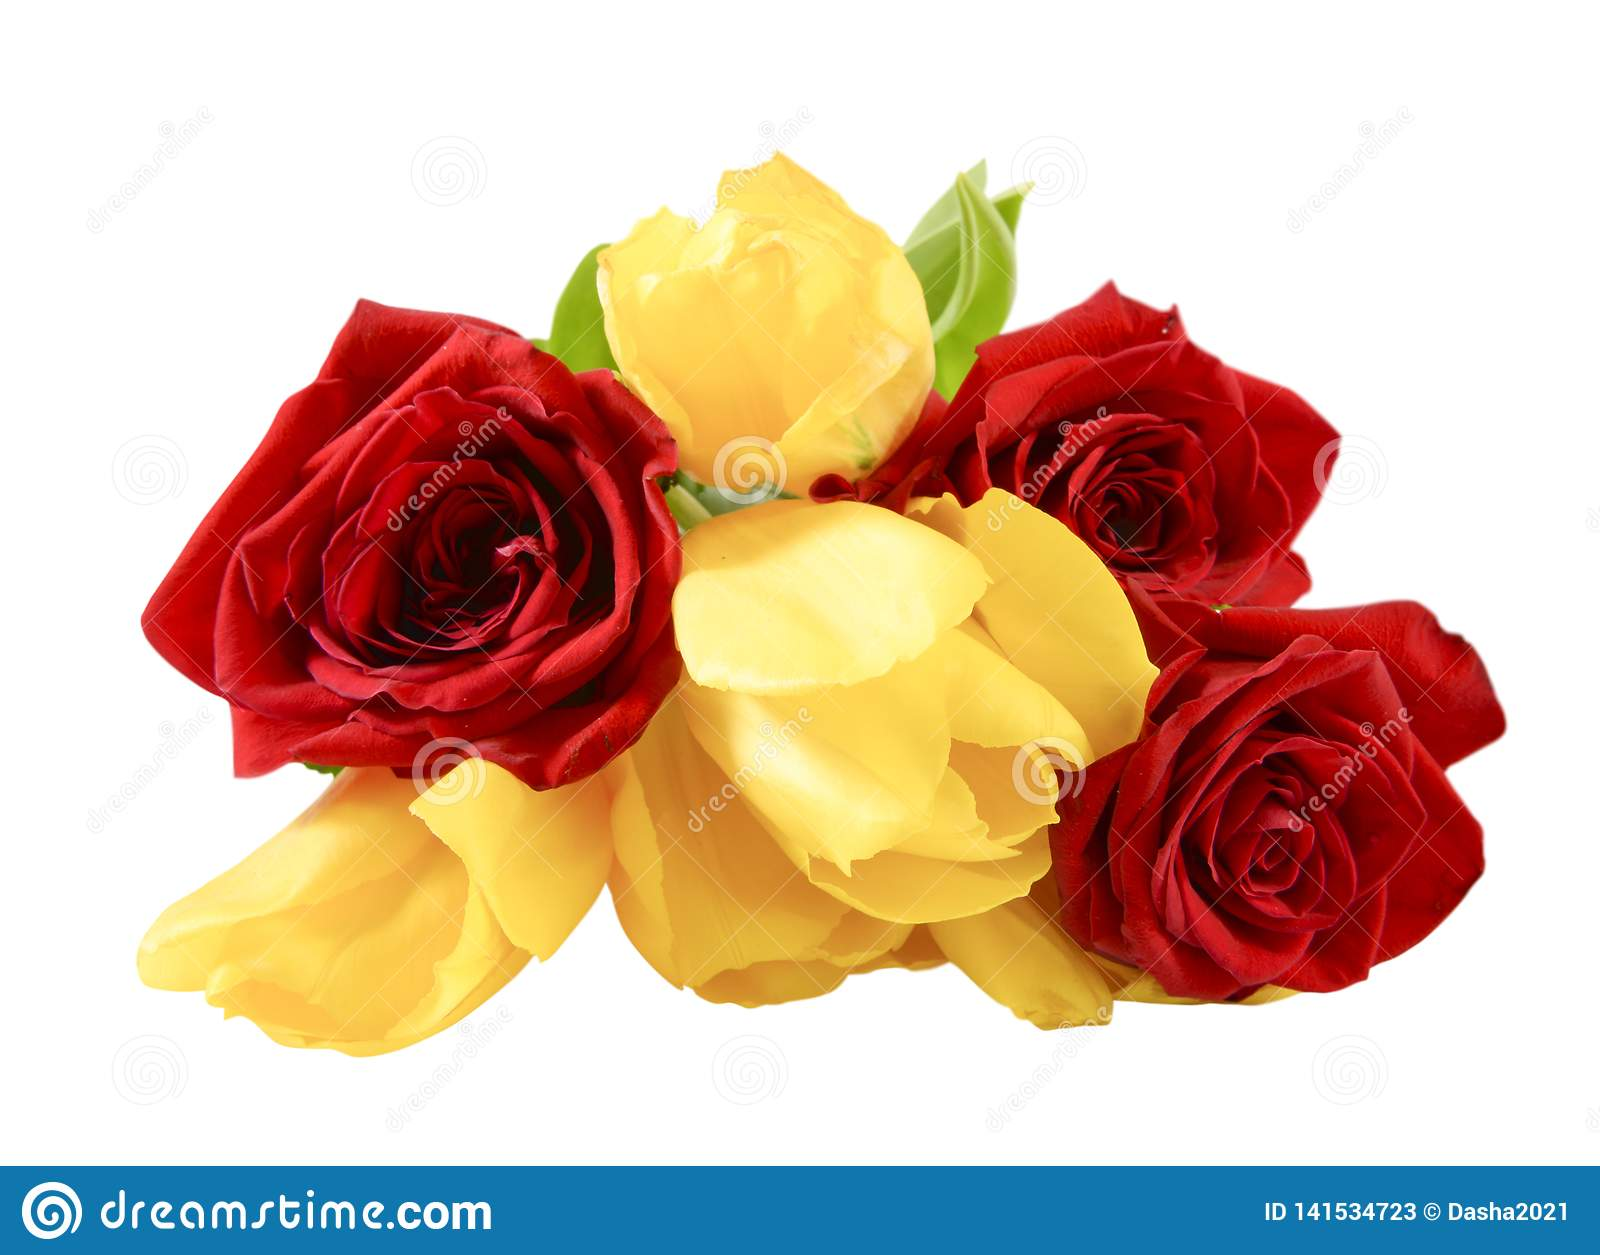 Bouquet Roses And Tulips Stock Image Image Of Beautiful 141534723